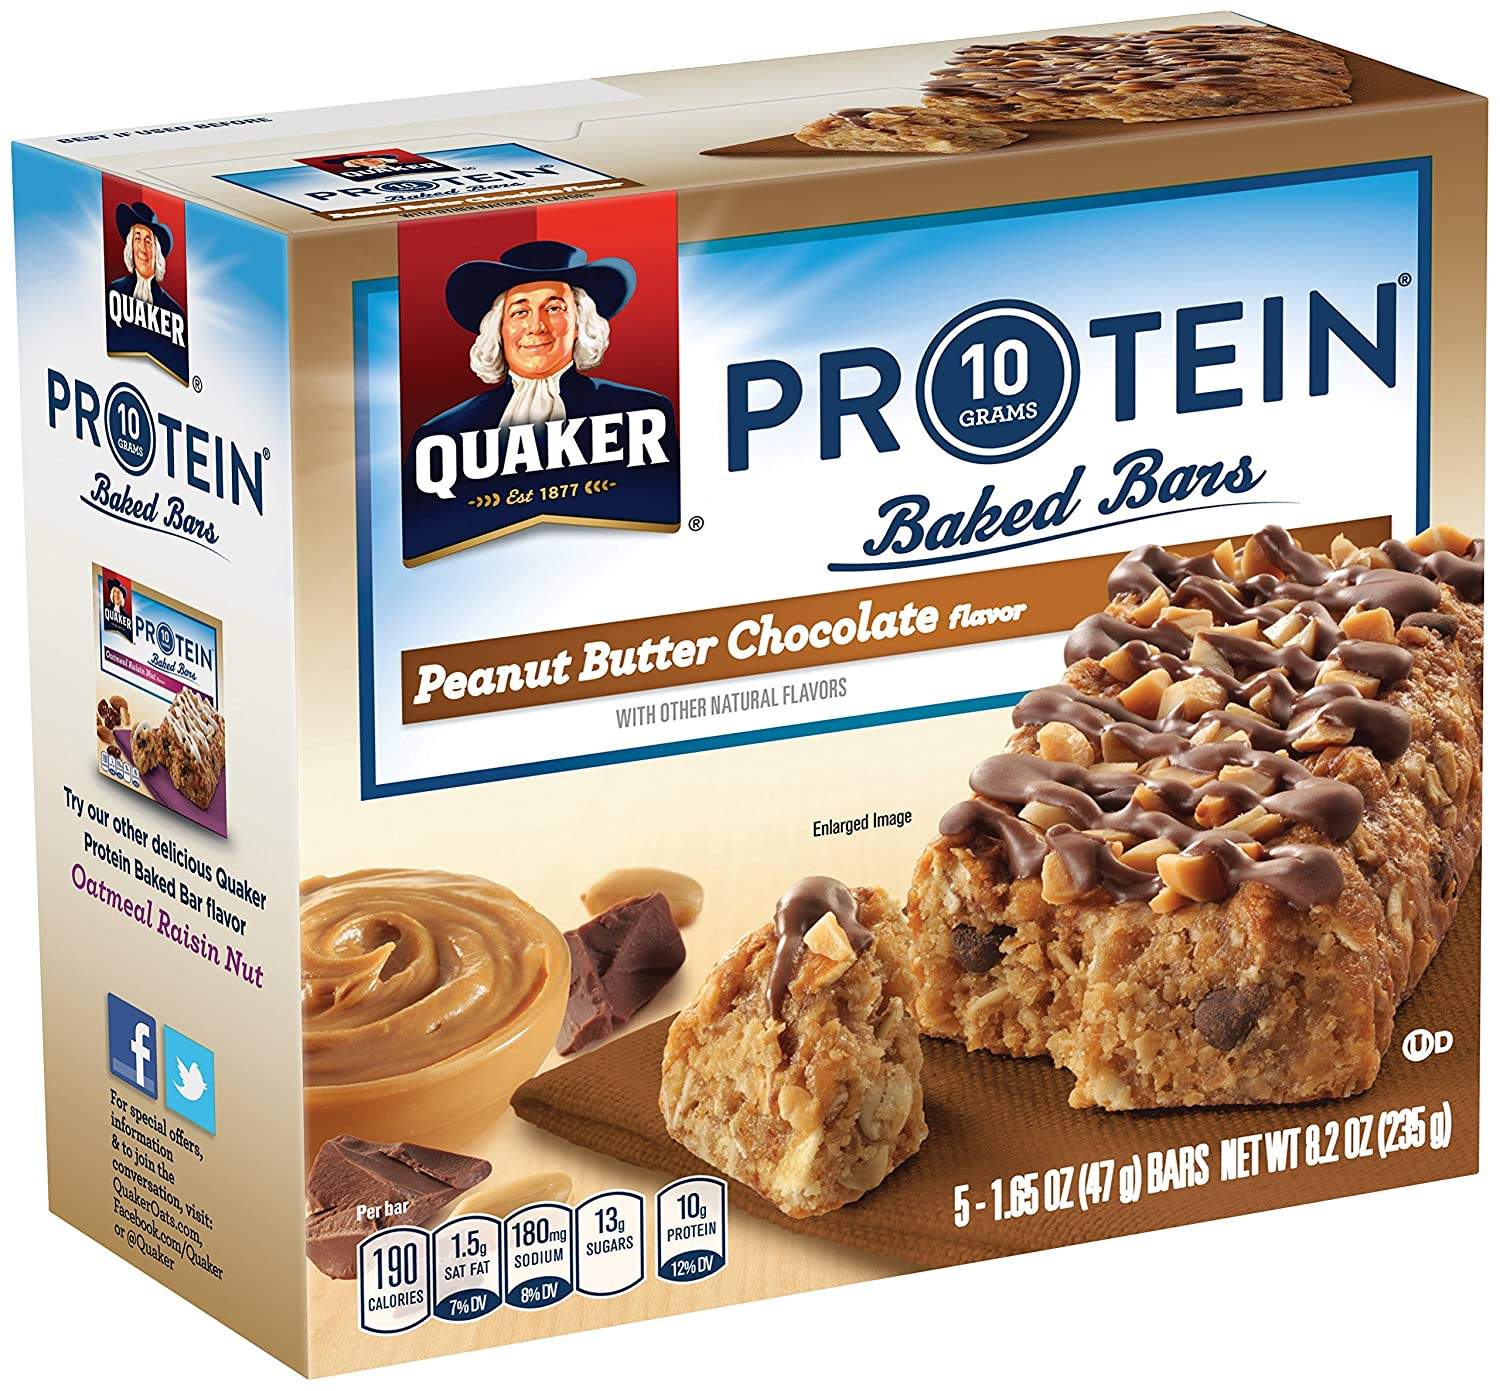 Quaker Baked Protein Bars Peanut Butter Chocolate Instant Oatmeal Jar 1 Carton 12 Pcs P Breakfast 5 Per Box Pack Of 8 Boxes Net Wt 82 Oz Grocery Gourmet Food